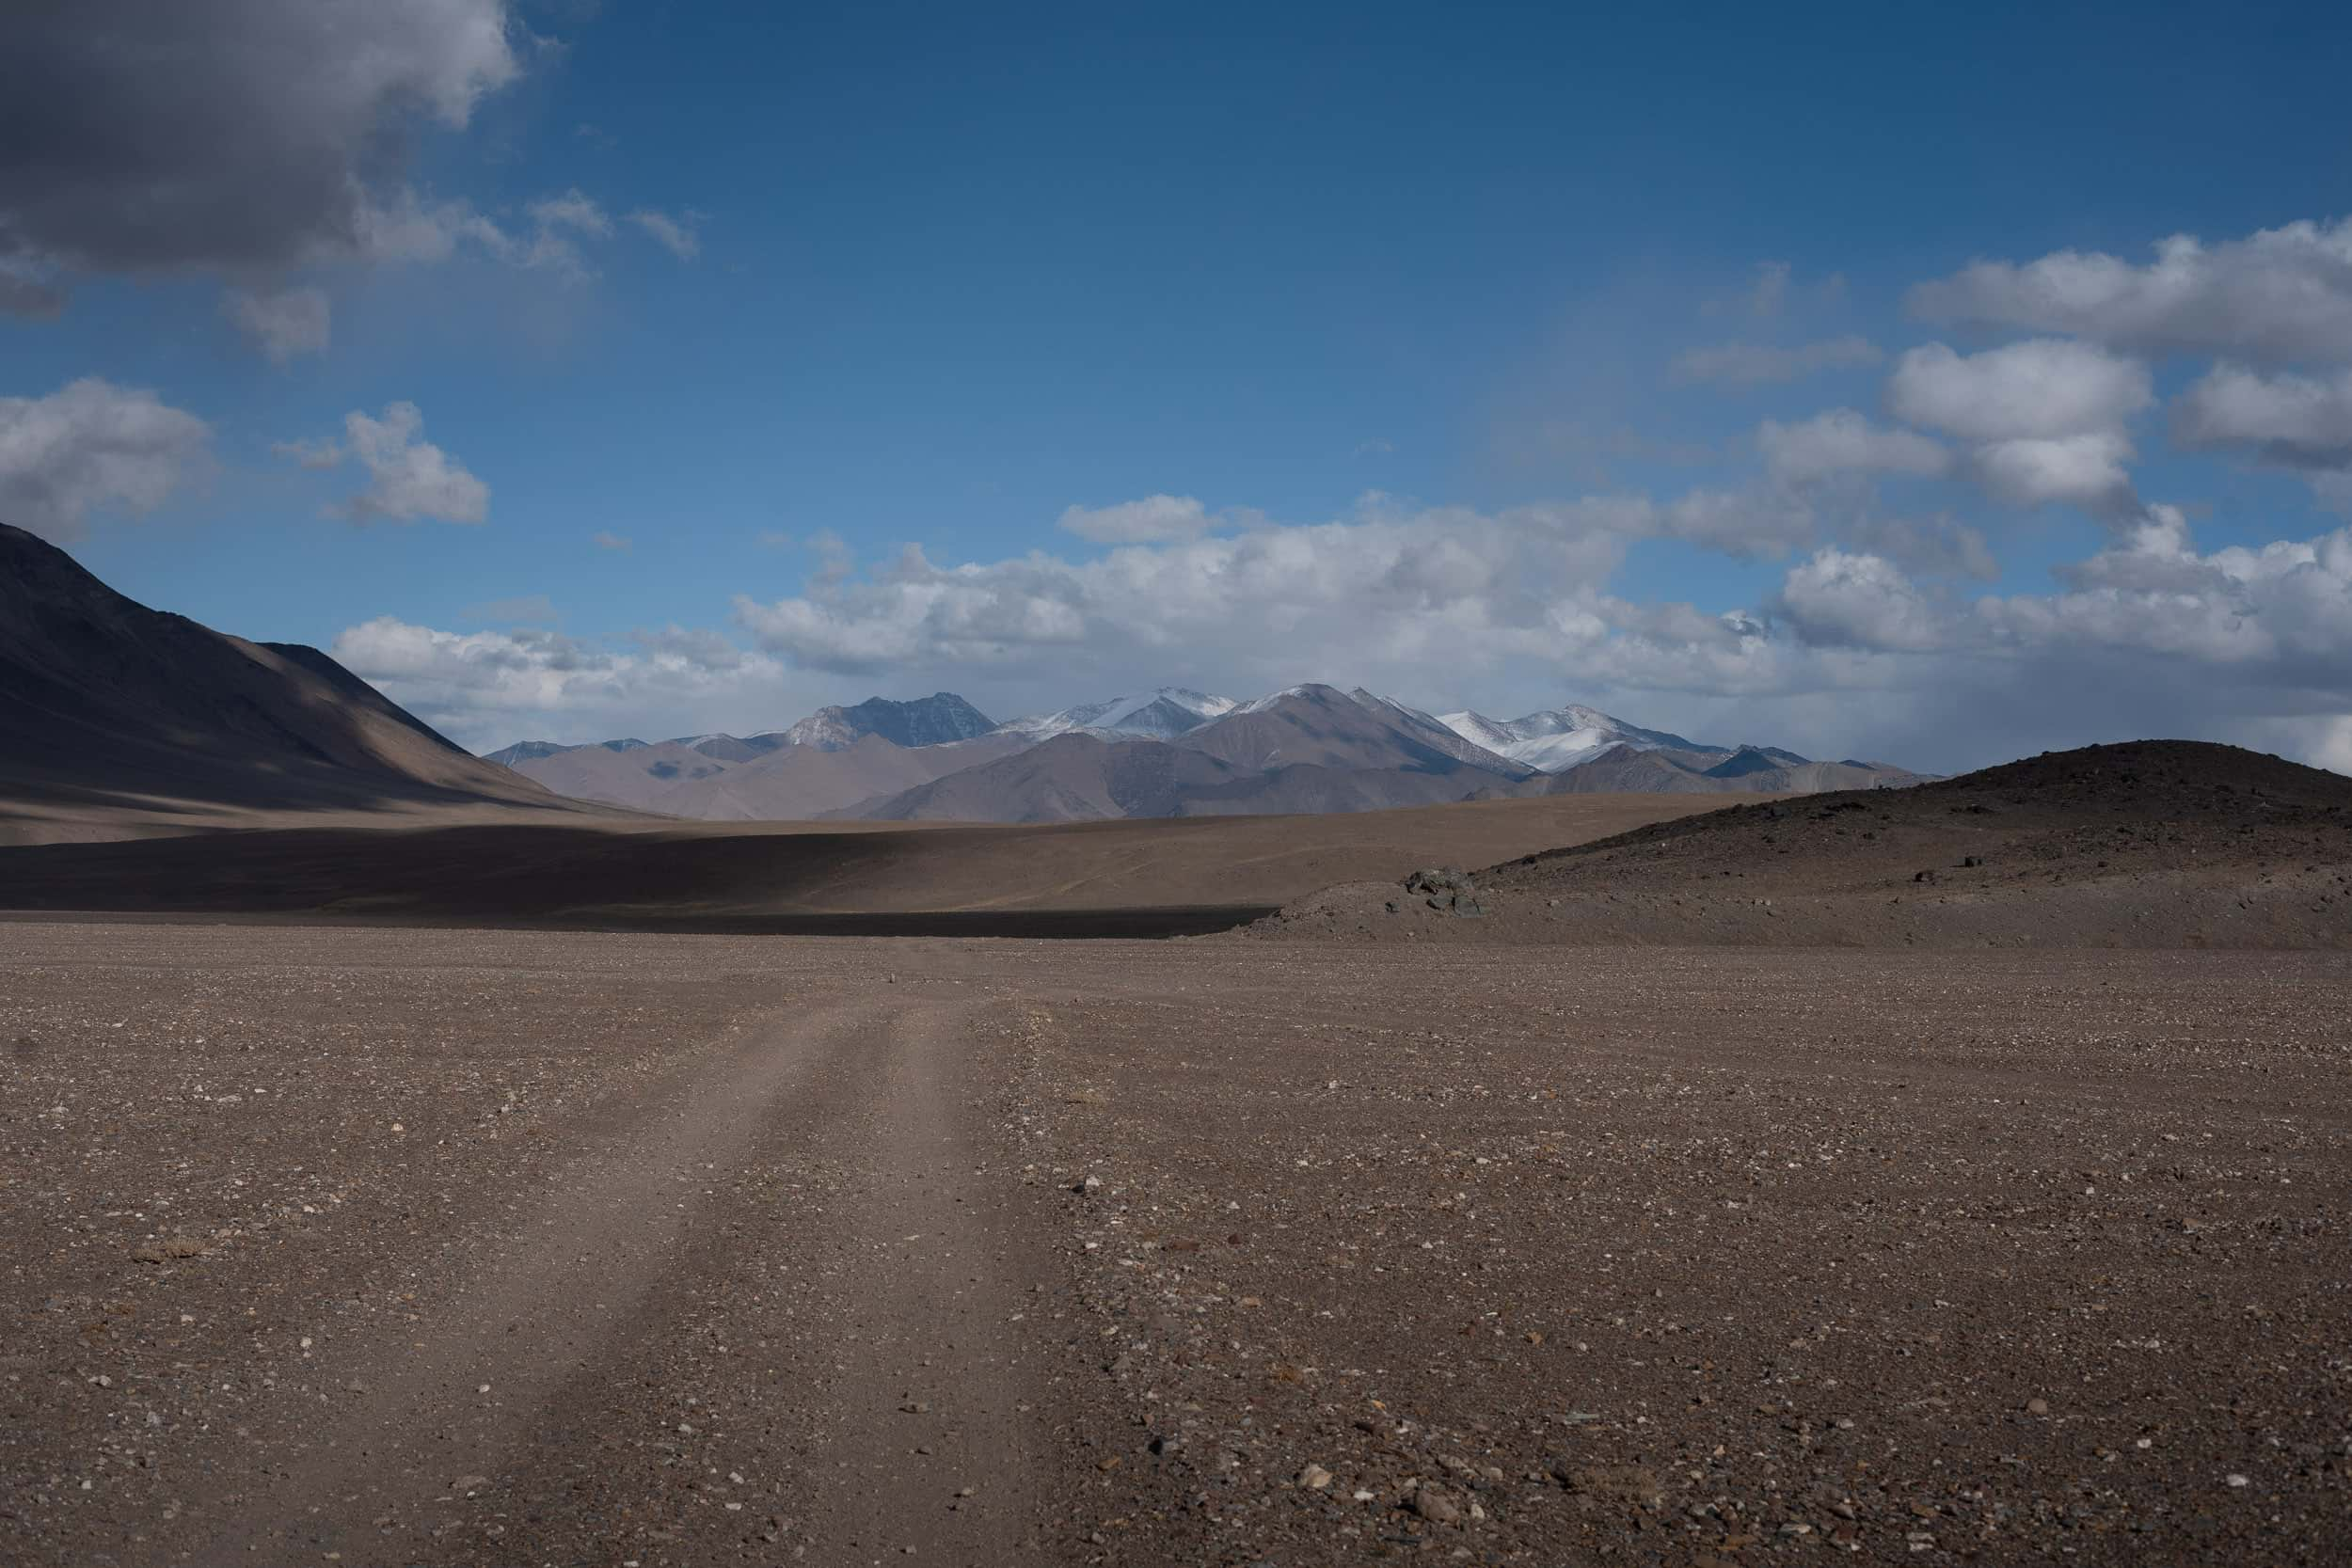 Pamir Plateau views